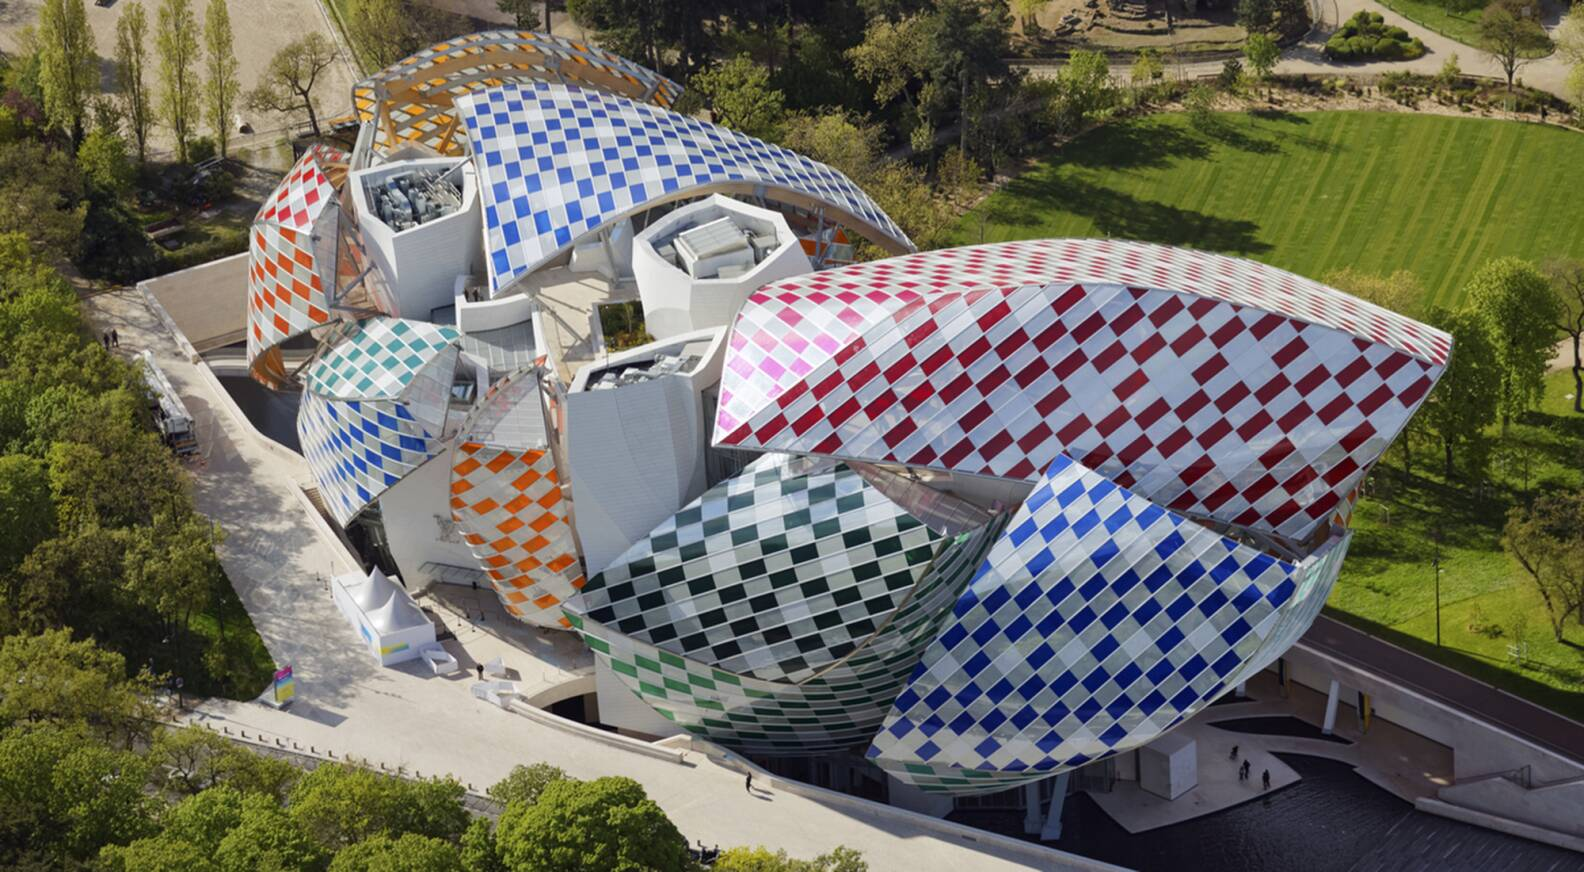 a33df390ef5 Daniel Buren brings color to the Fondation Louis Vuitton - LVMH